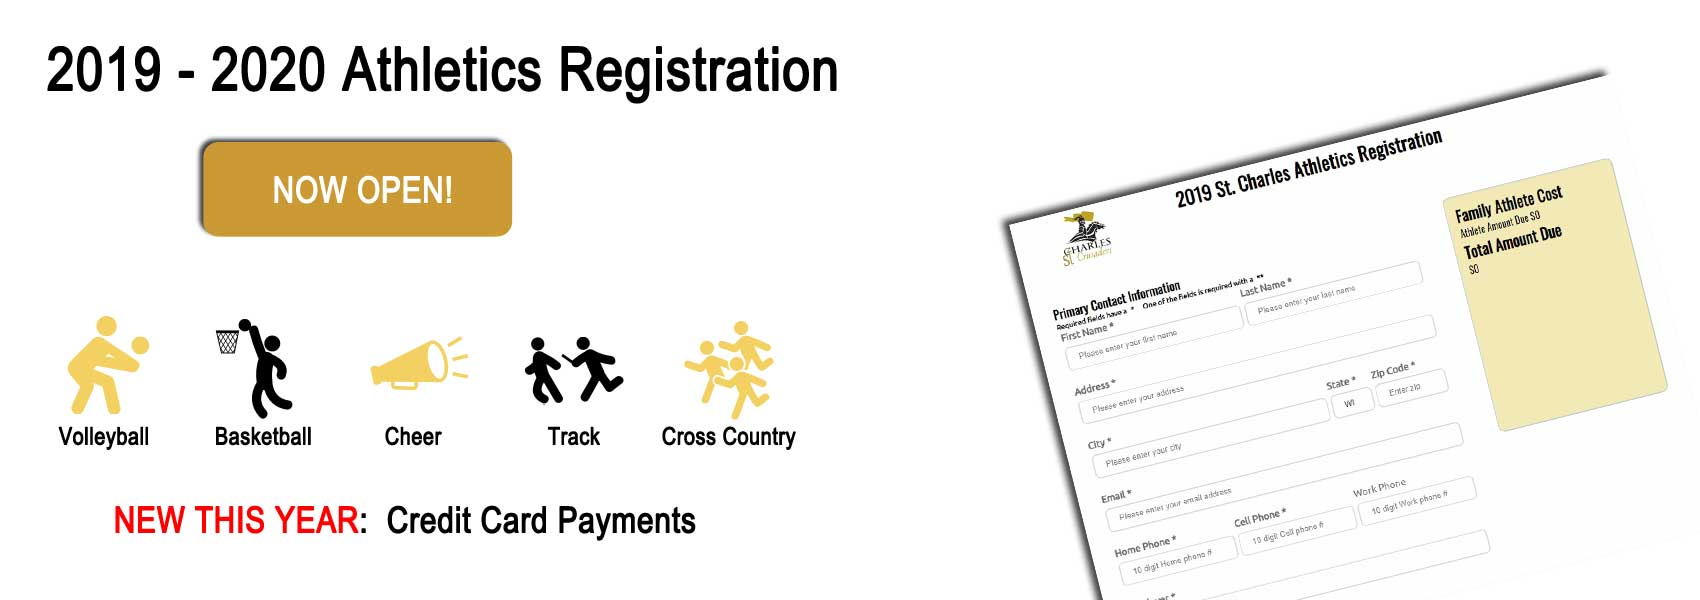 2019-2020 Athletics Registration